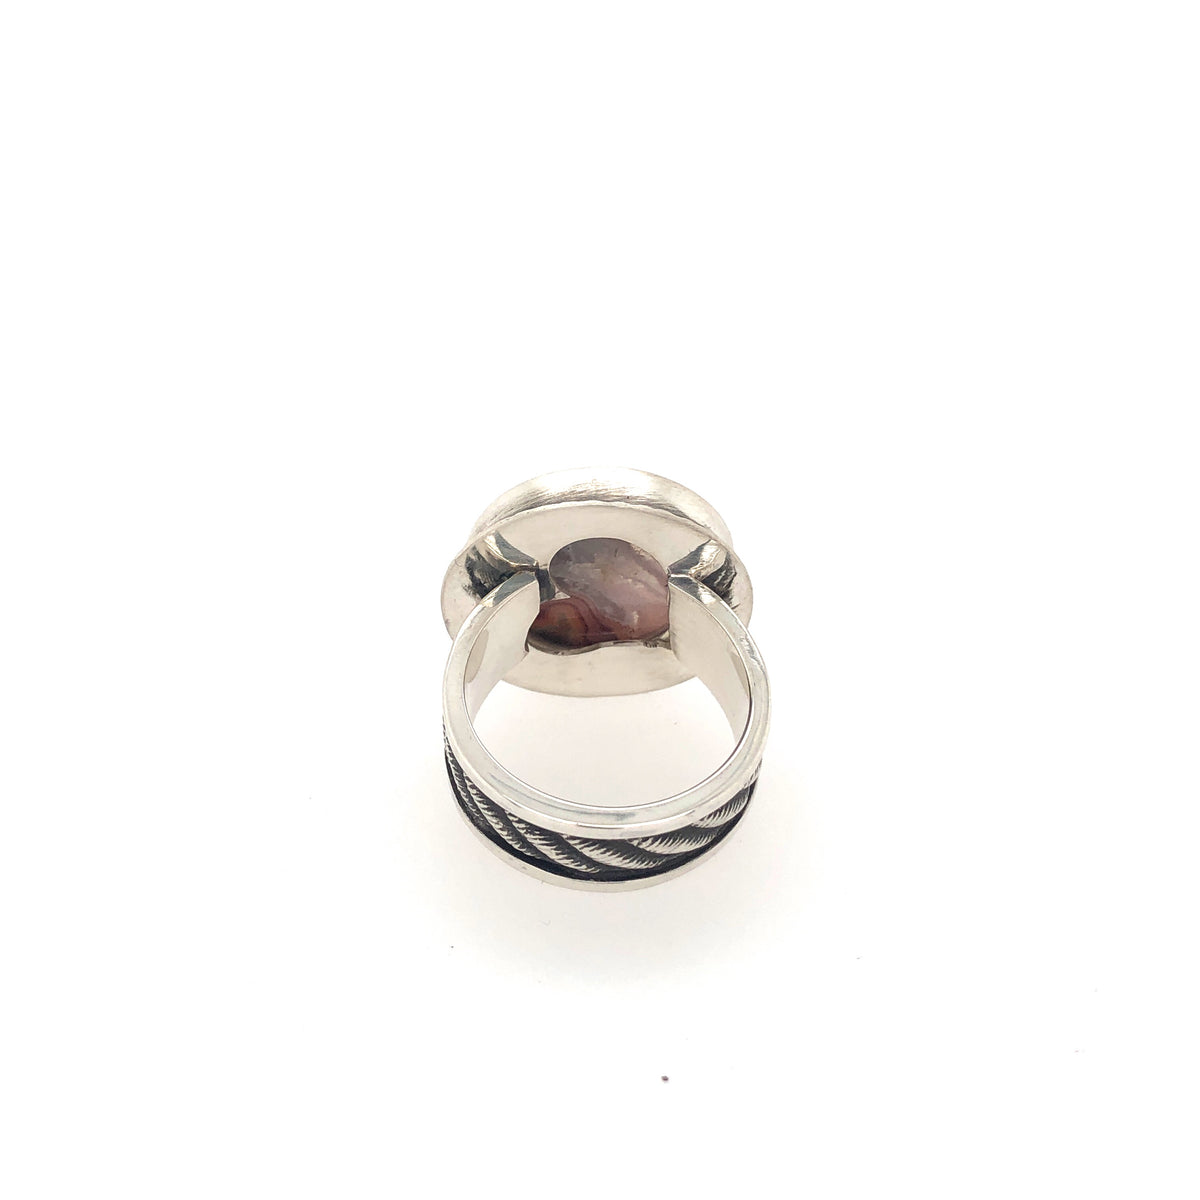 Teepee Canyon Agate Statement Ring